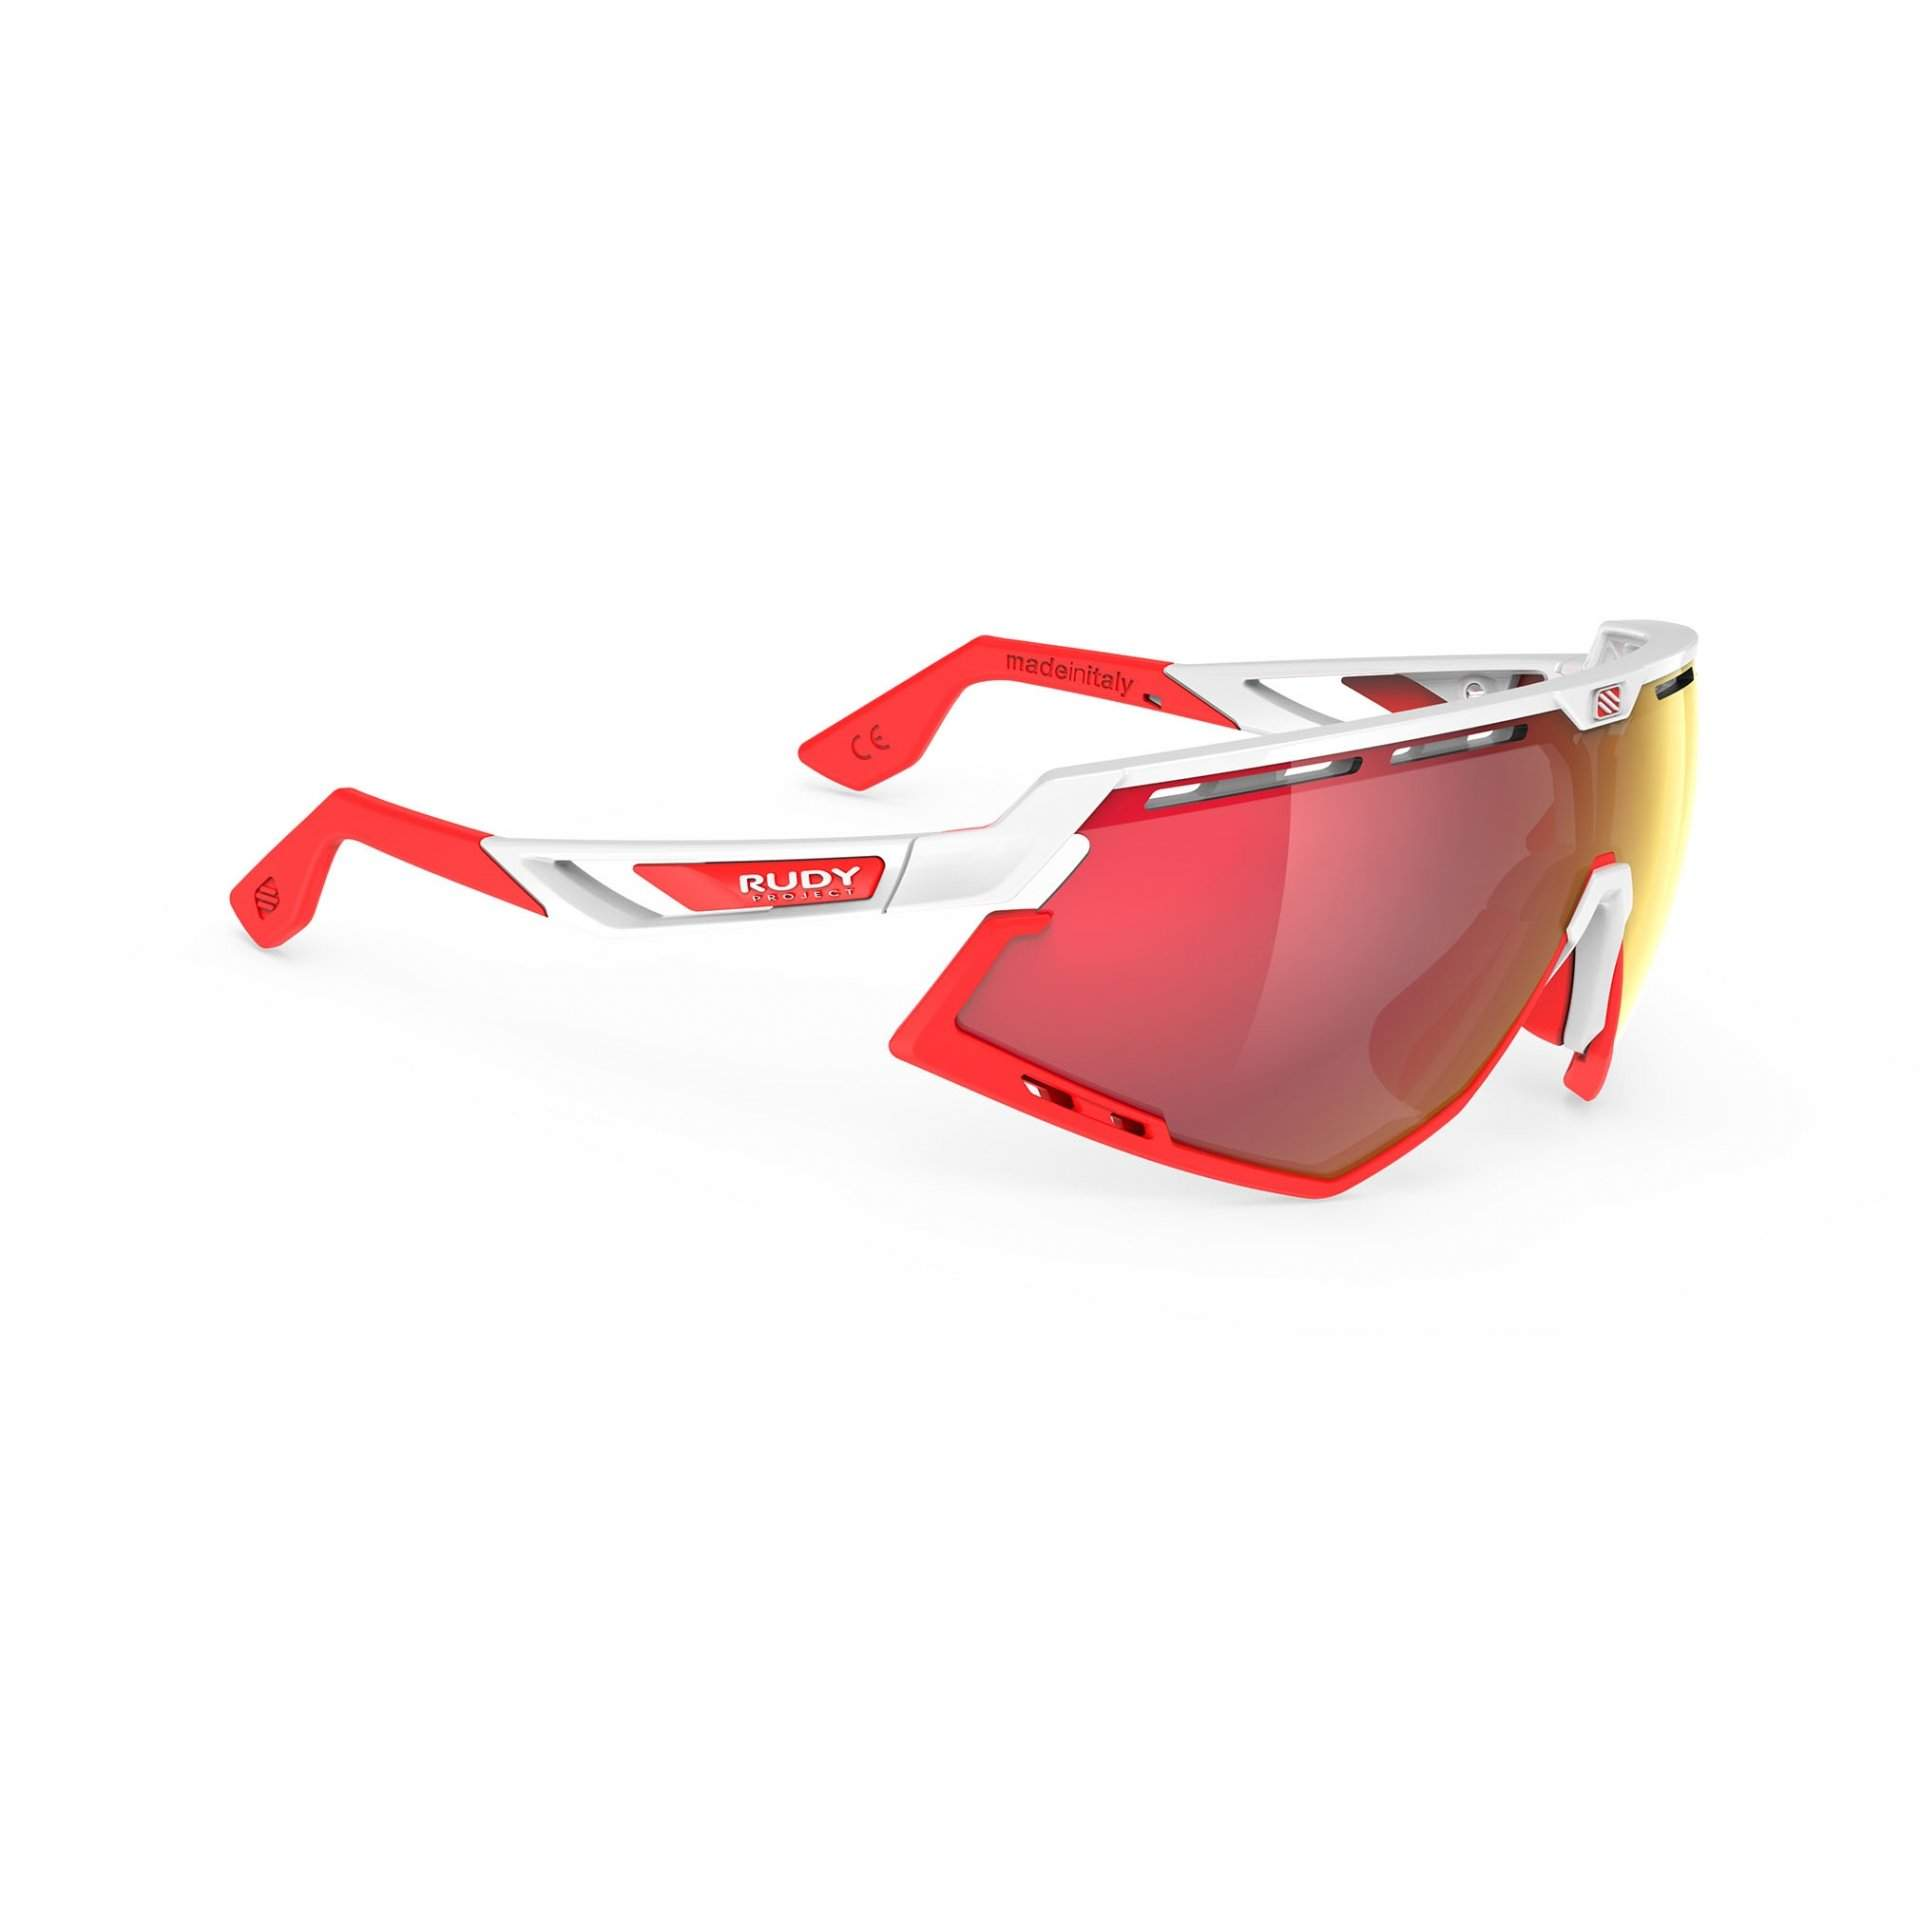 OKULARY RUDY PROJECT DEFENDER MULTILASER RED + WHITE GLOSS|BUMPRES RED FLUO SP5238690000